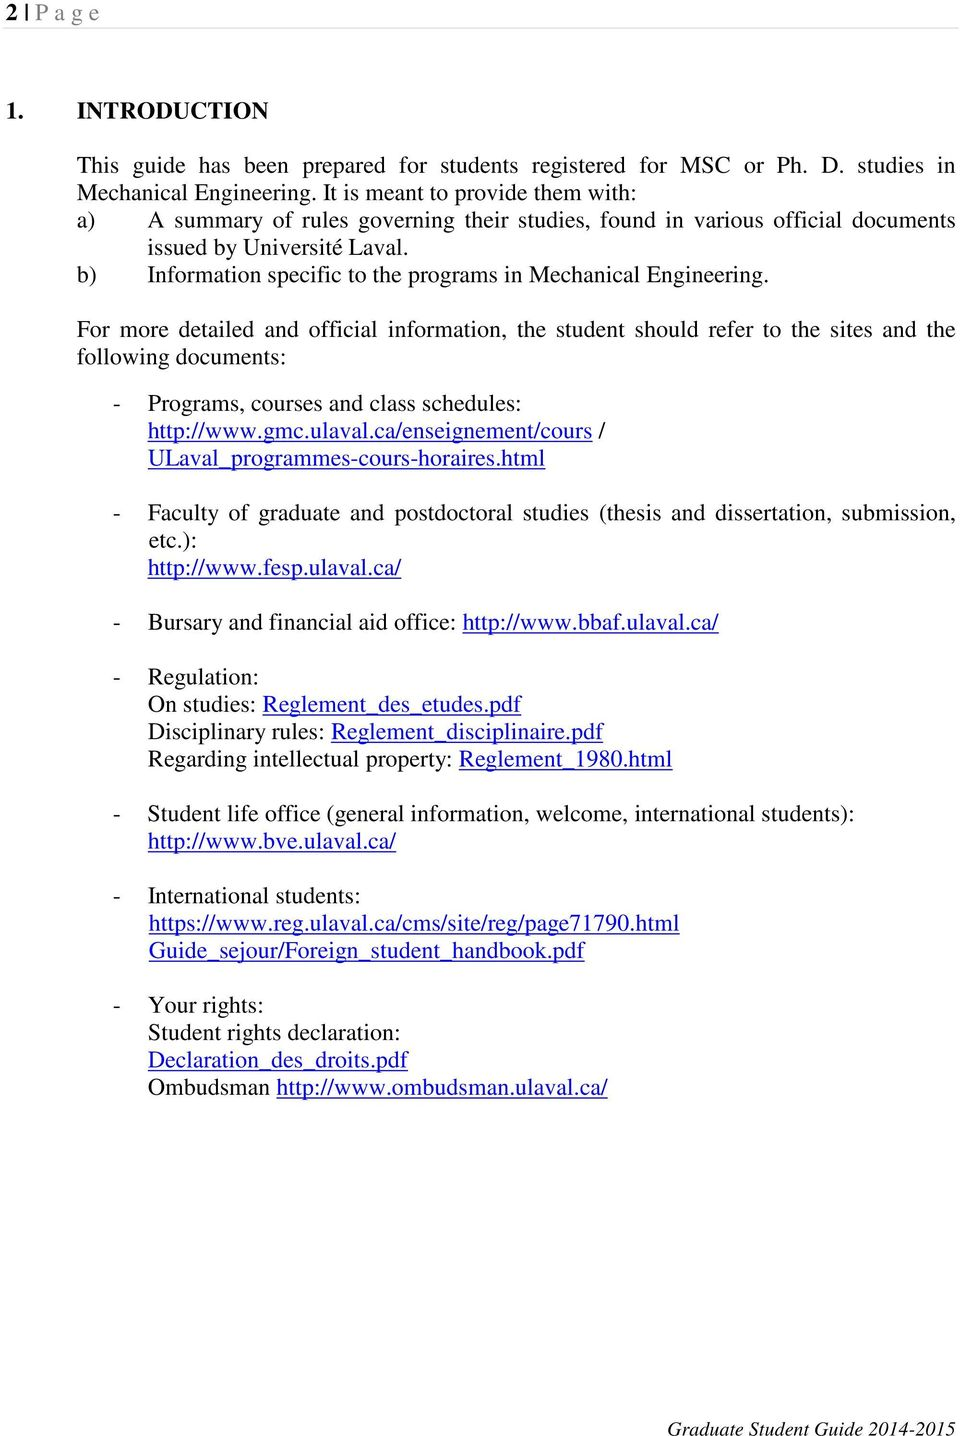 b) Information specific to the programs in Mechanical Engineering.